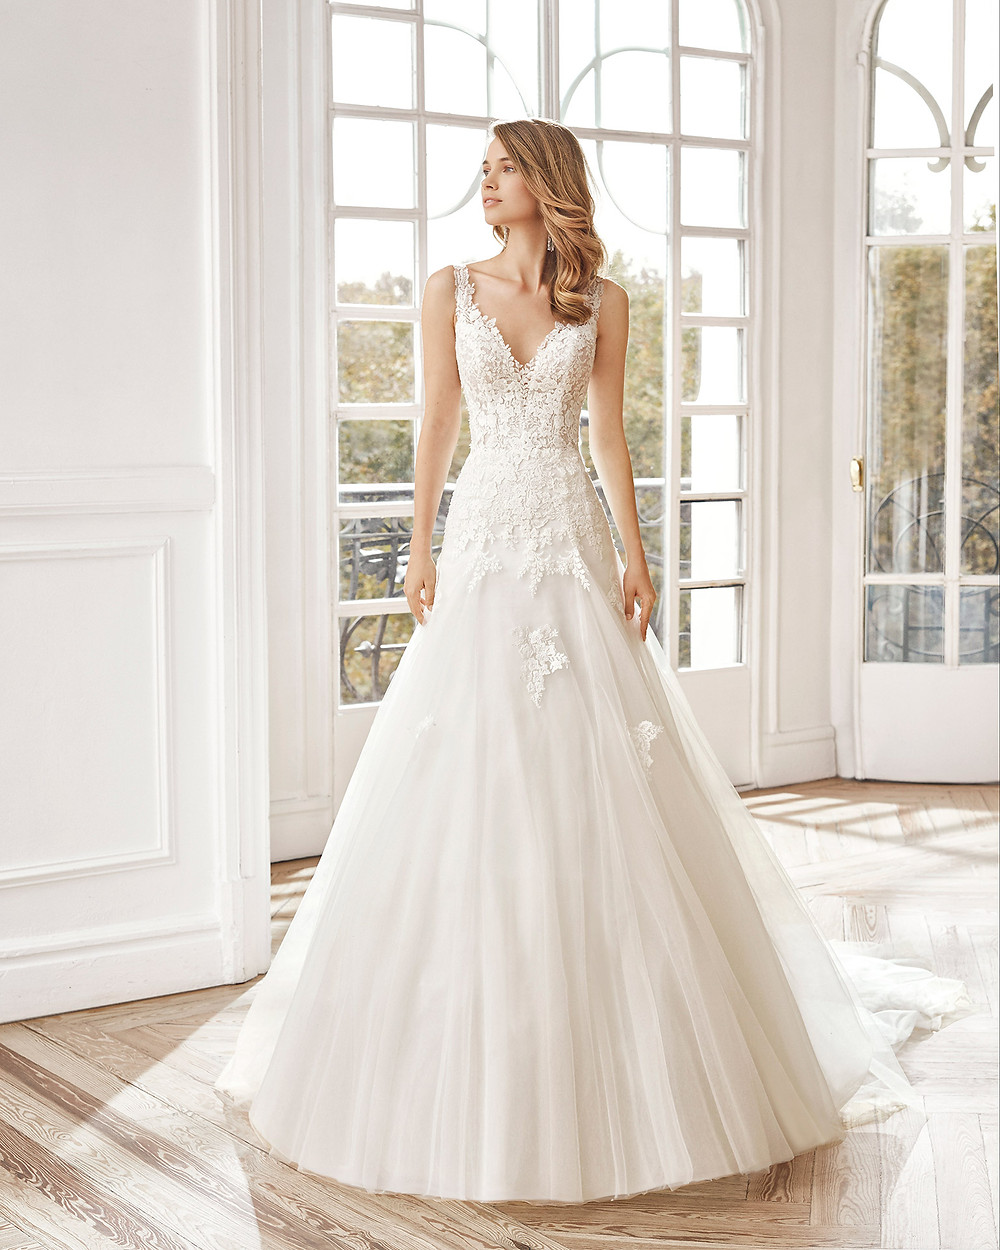 An Aire Barcelona 2020 lace and tulle A-line wedding dress with straps and a v neckline